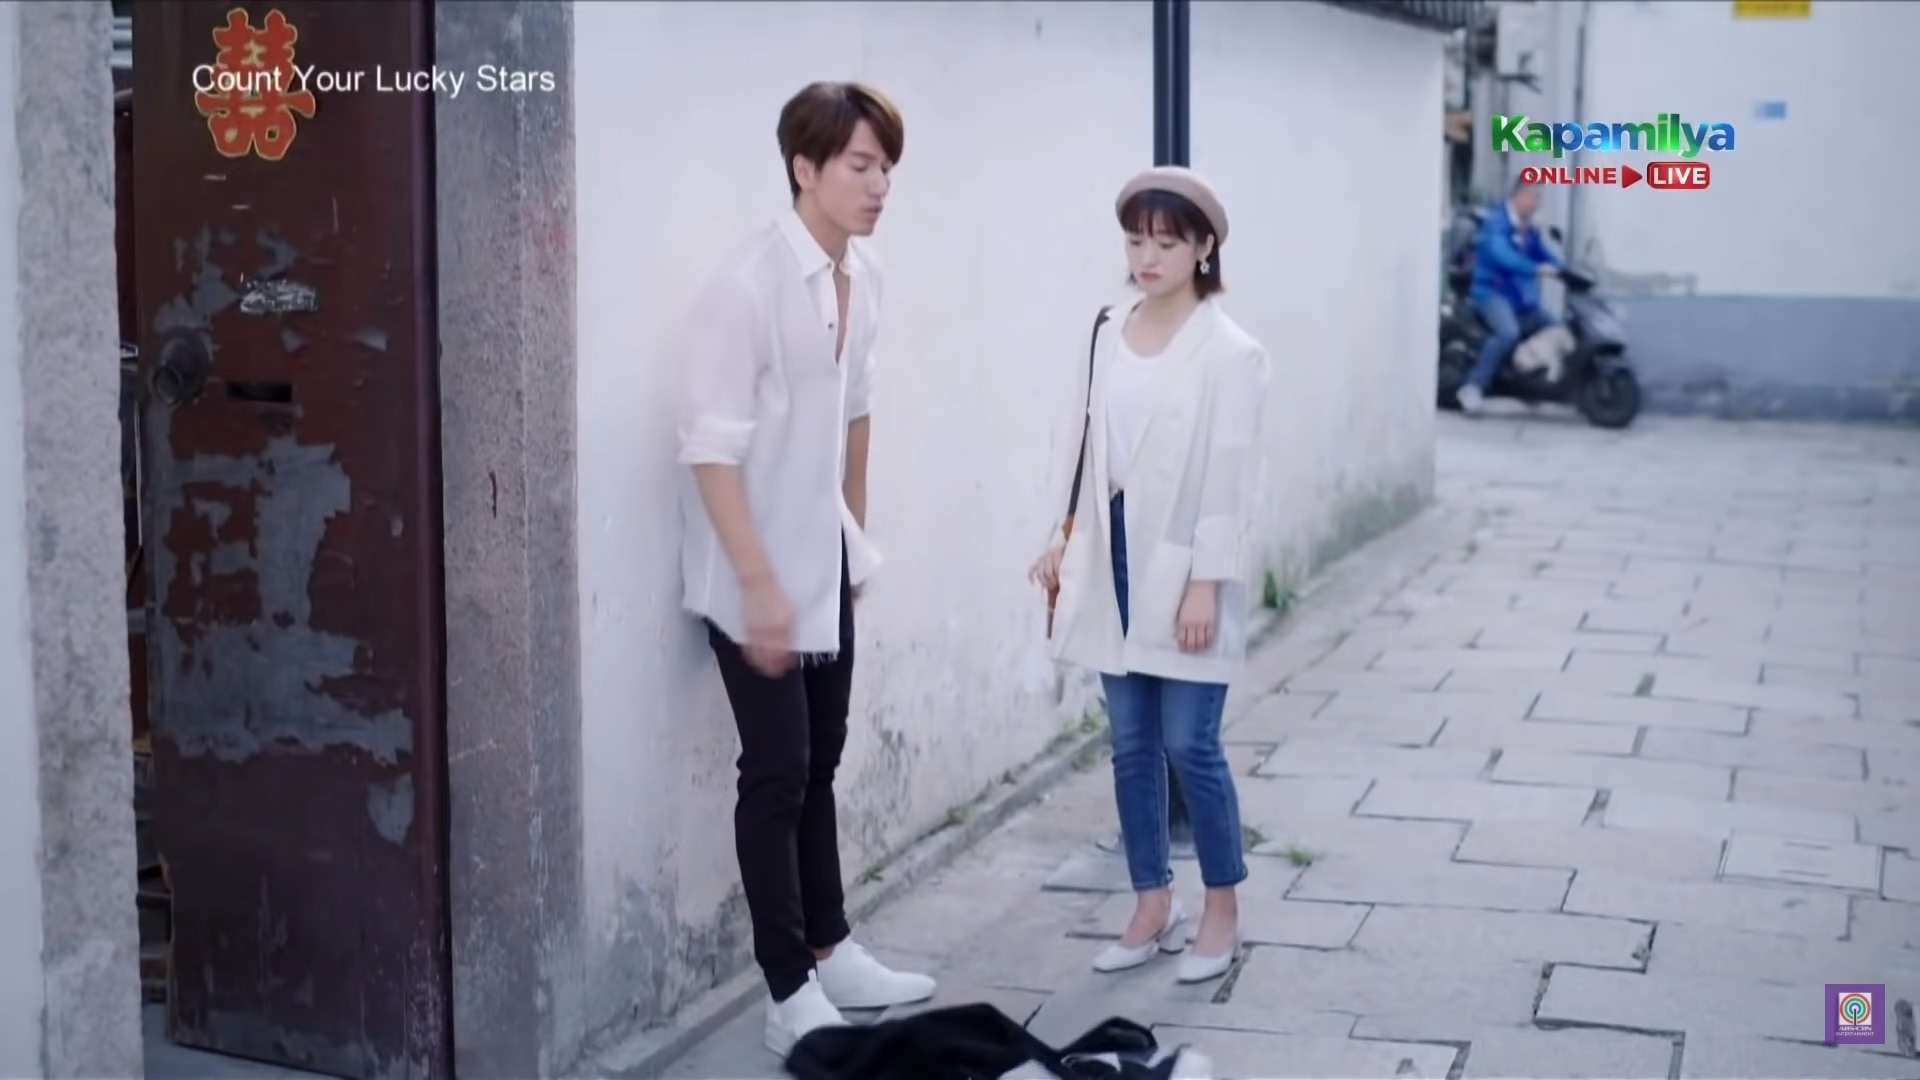 Jerry Yan and Shen Yue